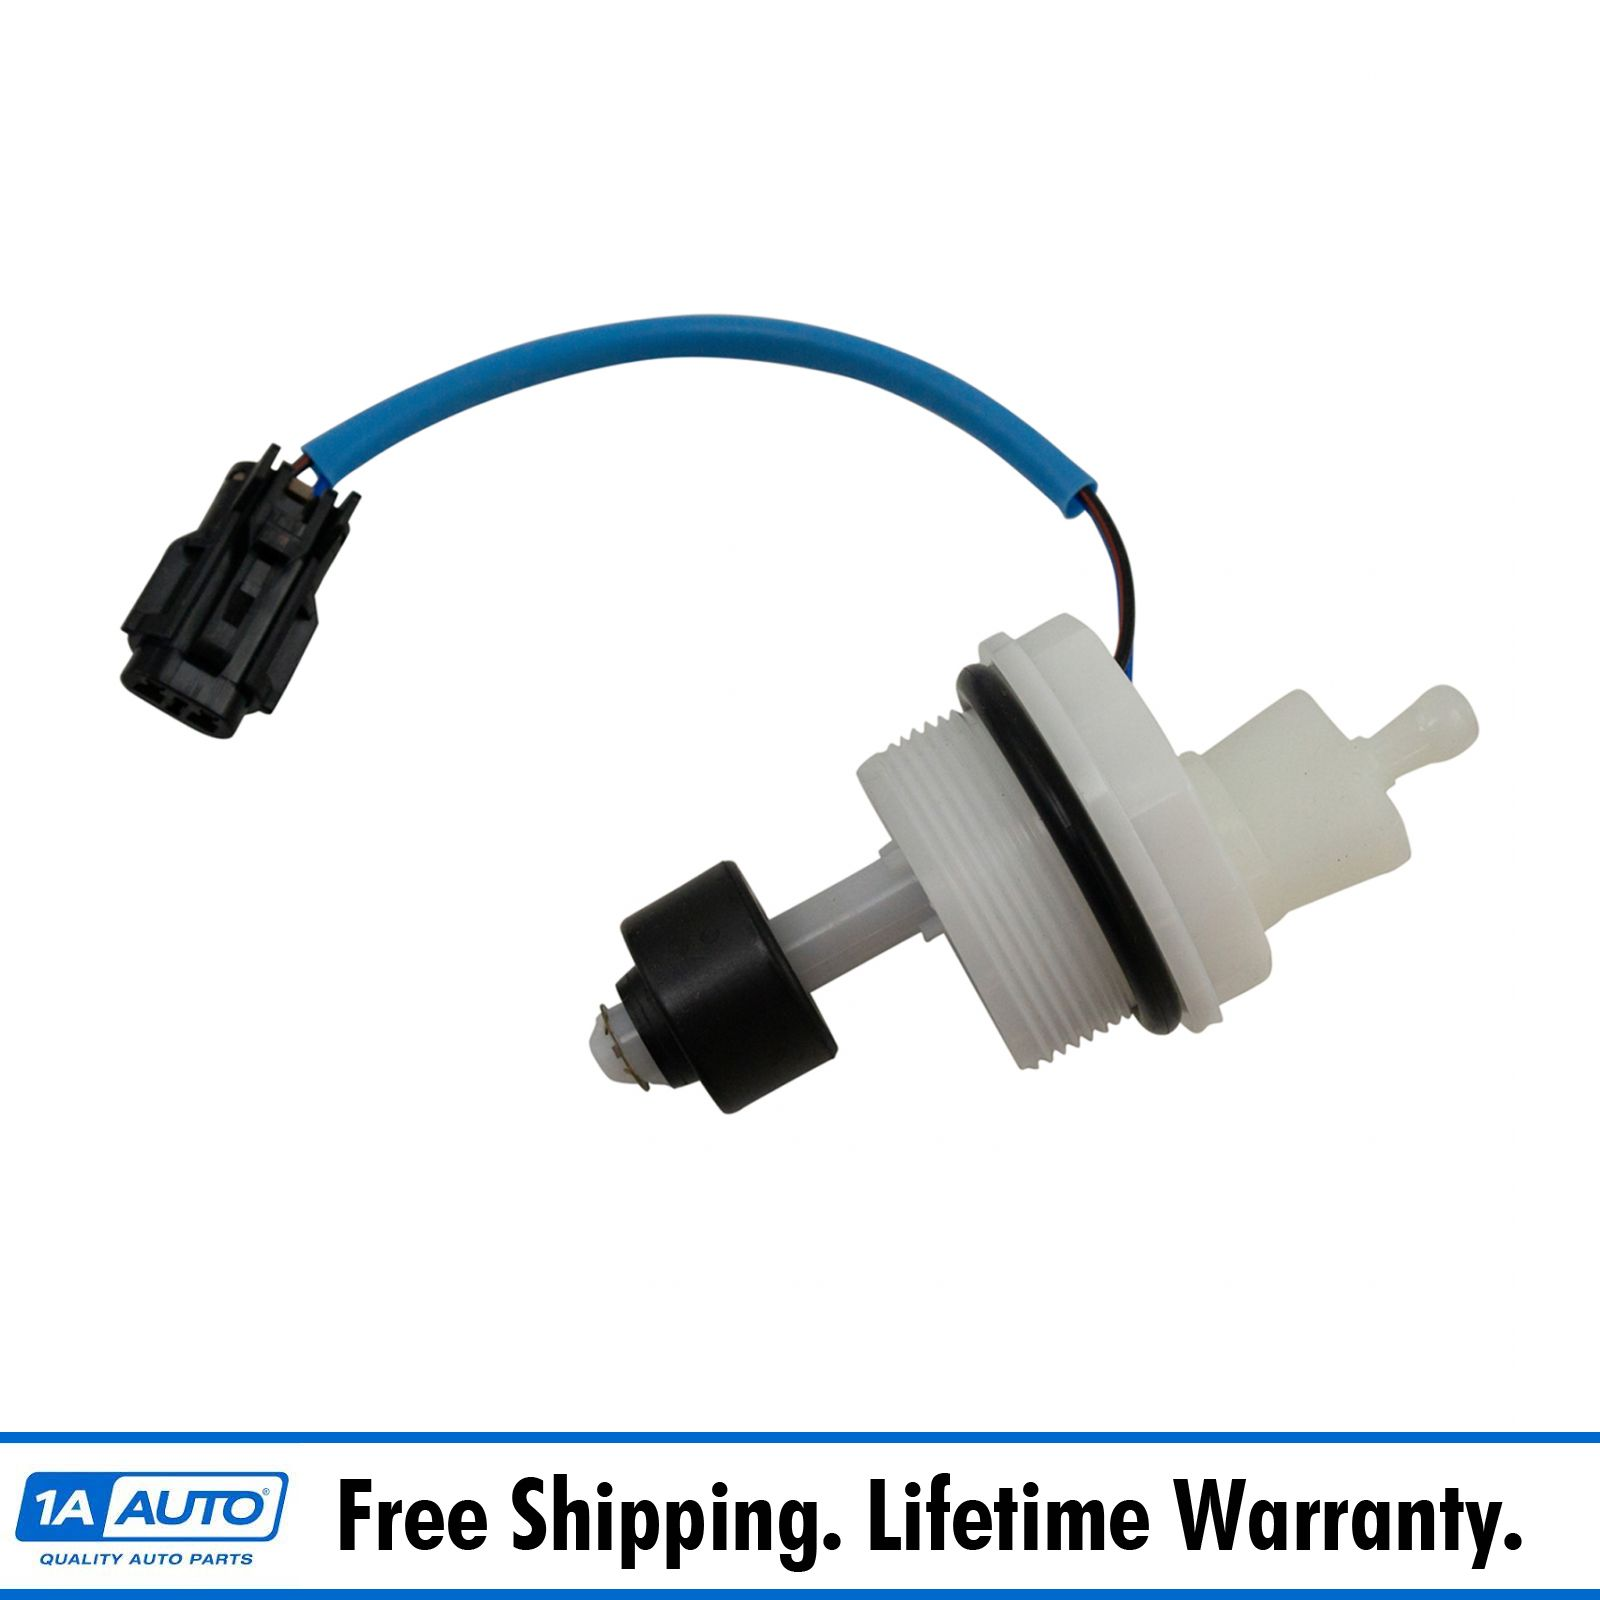 OEM 12639277 Updated Fuel Filter Water Sensor for Chevy Silverado GMC  Sierra New